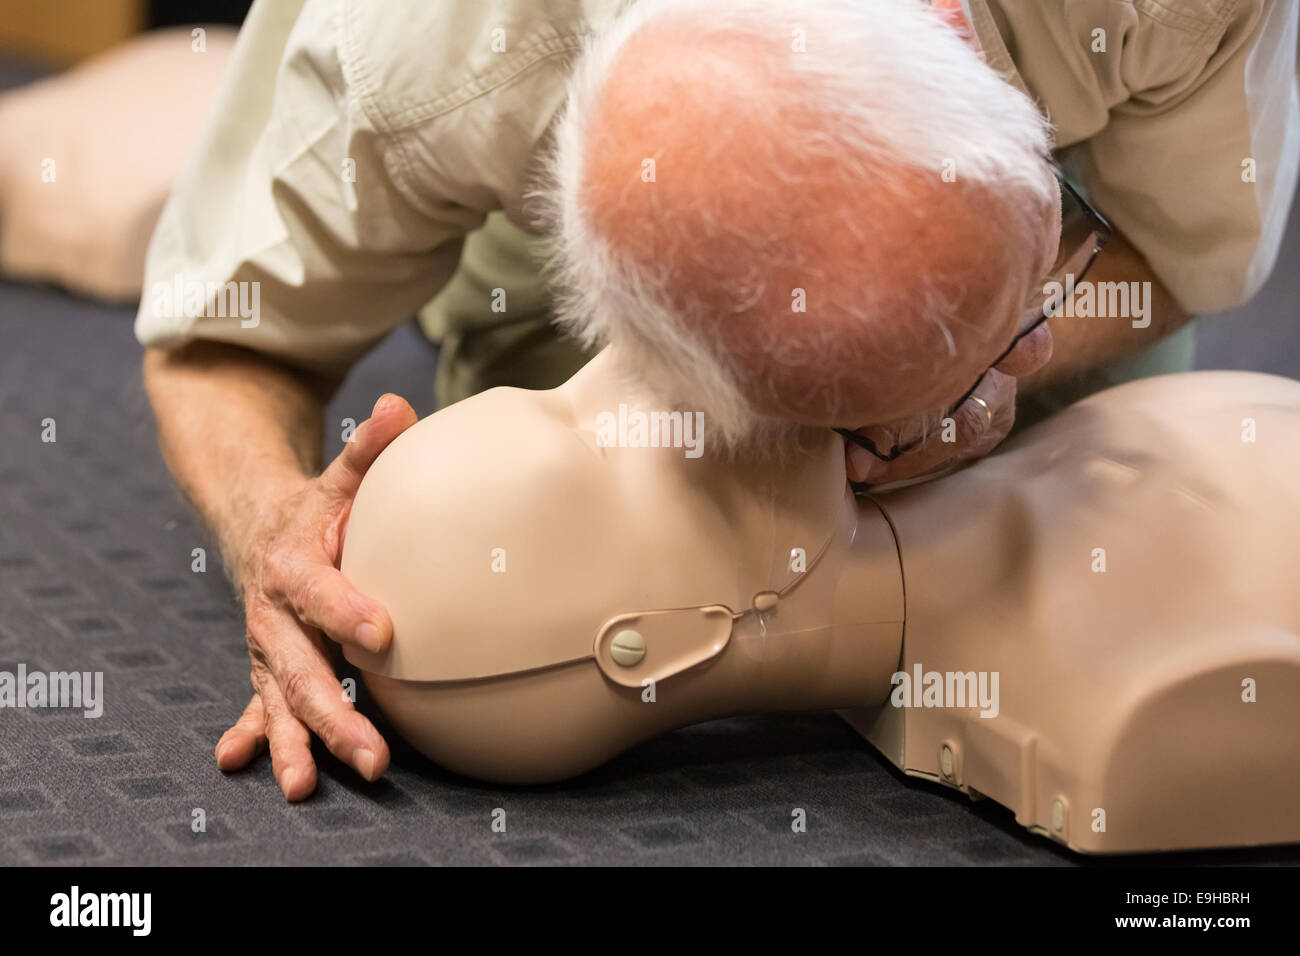 First aid CPR seminar. - Stock Image